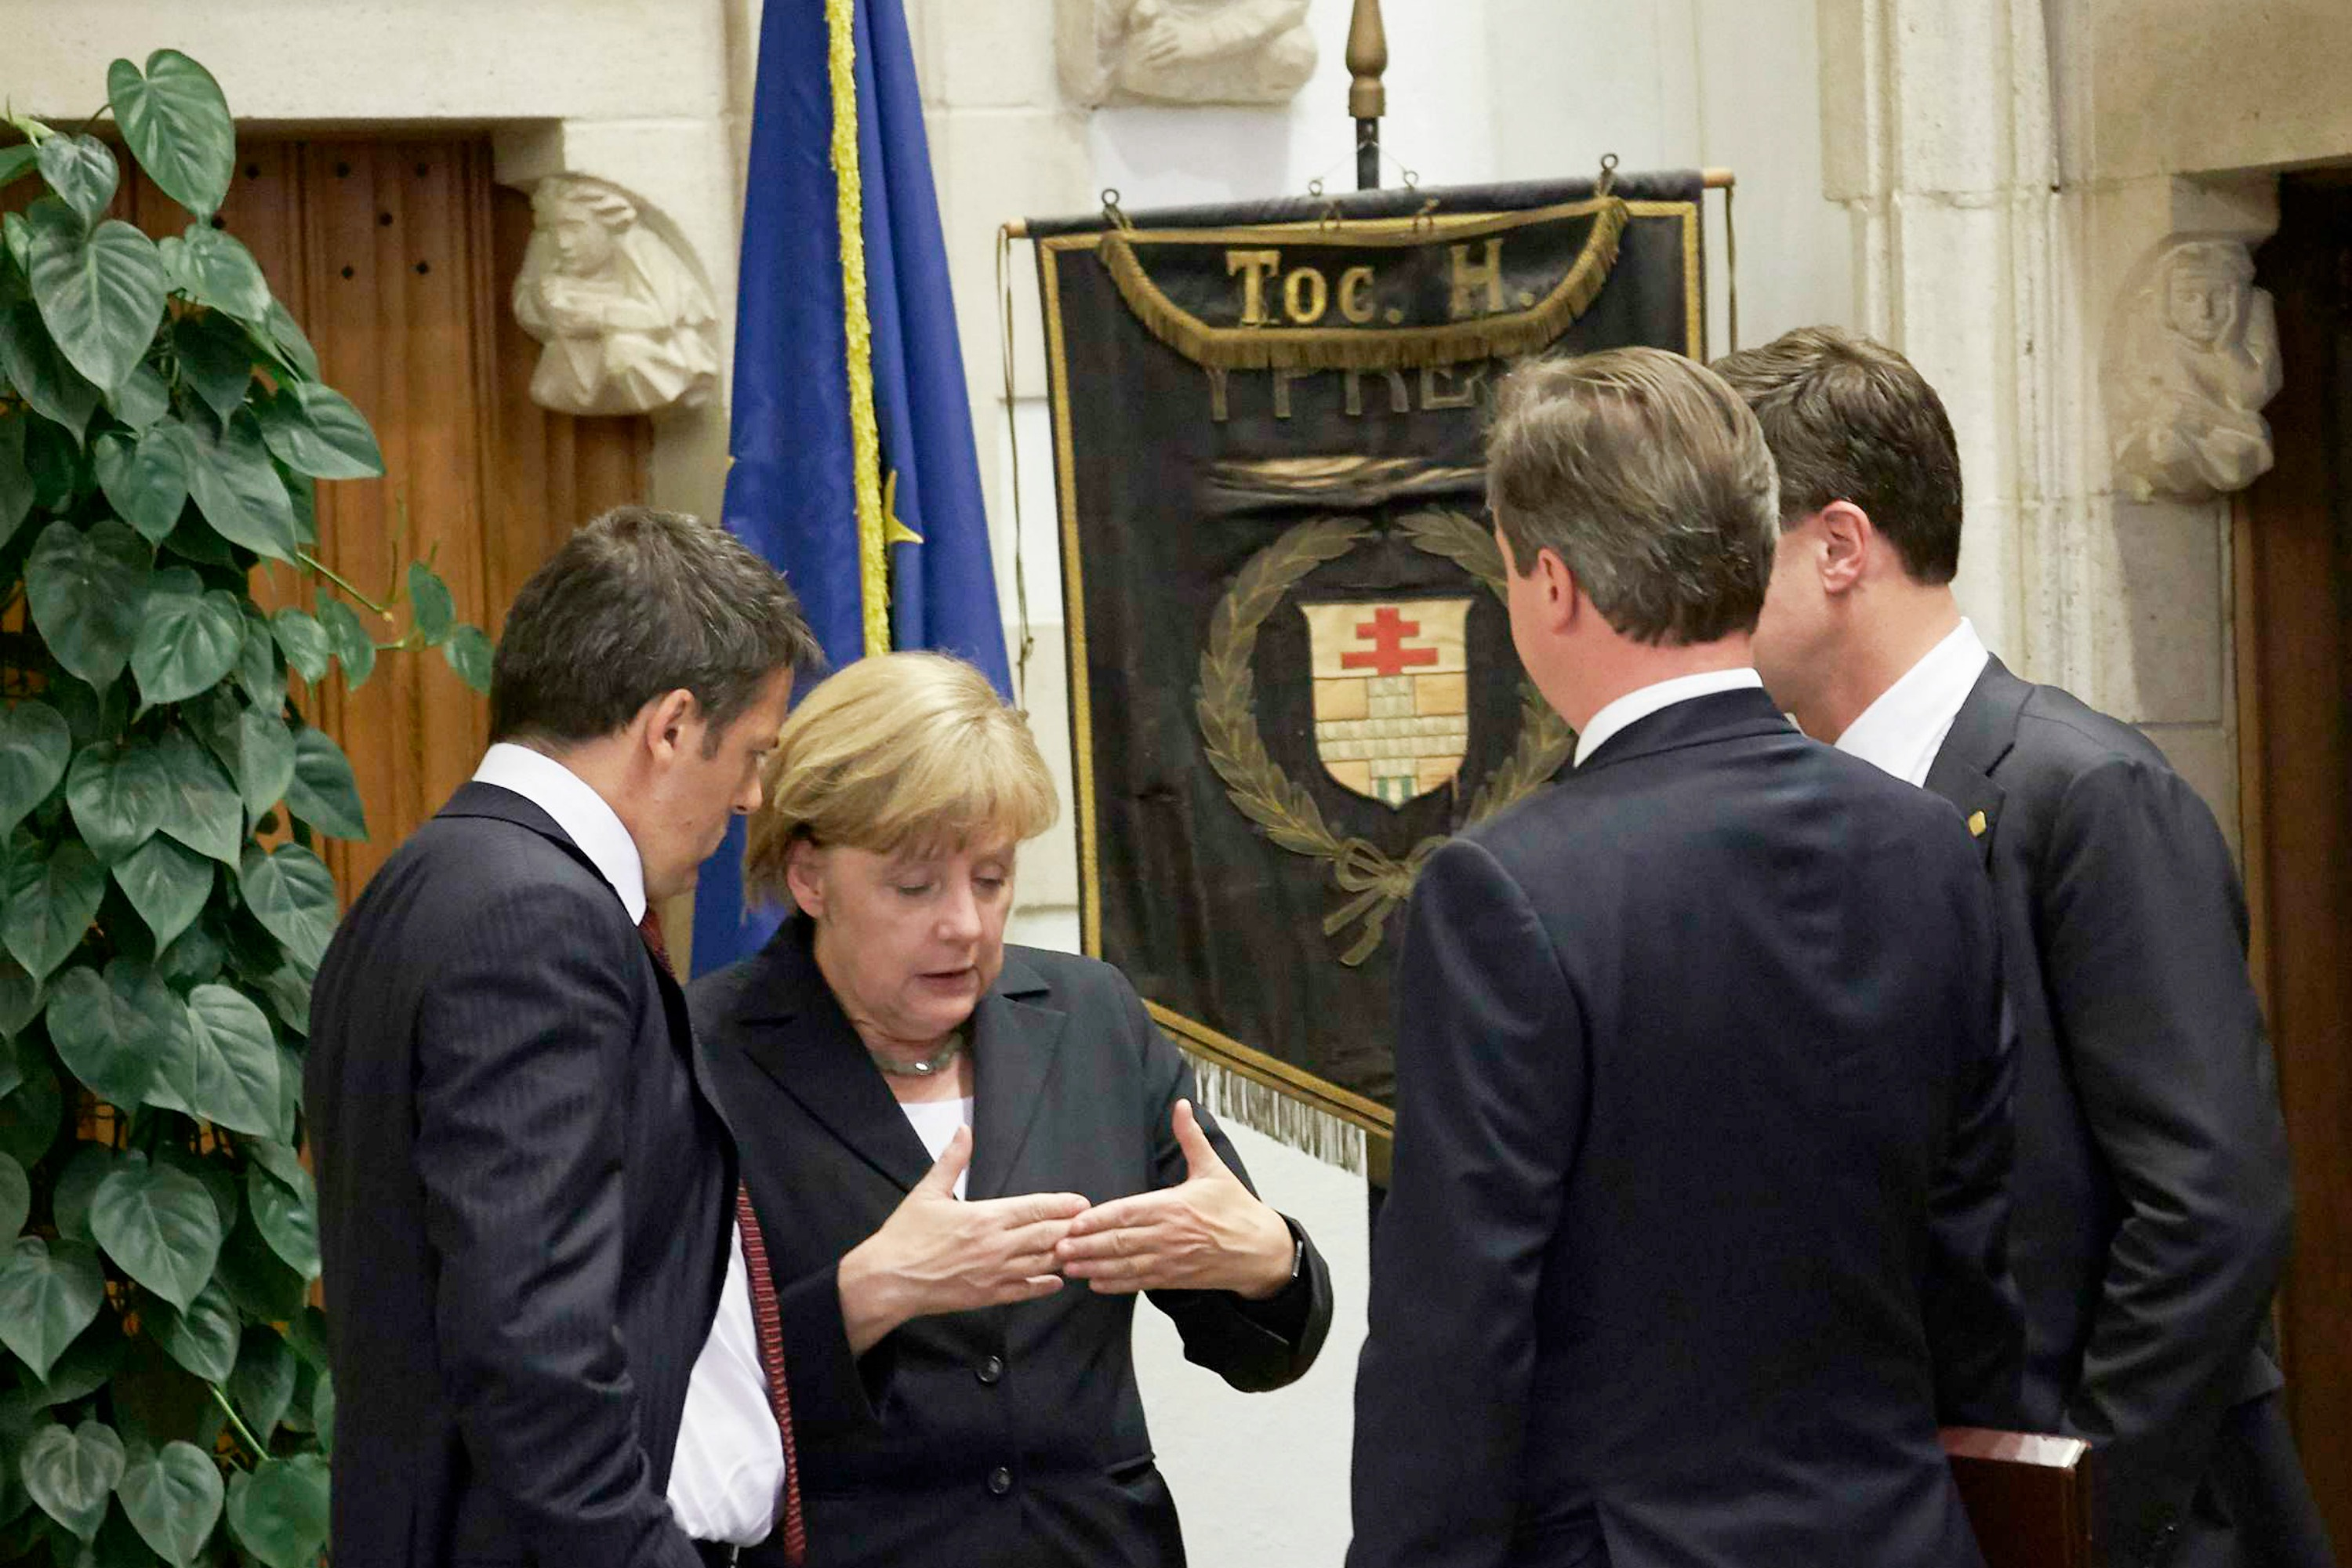 Left to right: Matteo Renzi, Angela Merkel, David Cameron, Mark Rutte in Ypres yesterday [The Council of the European Union]